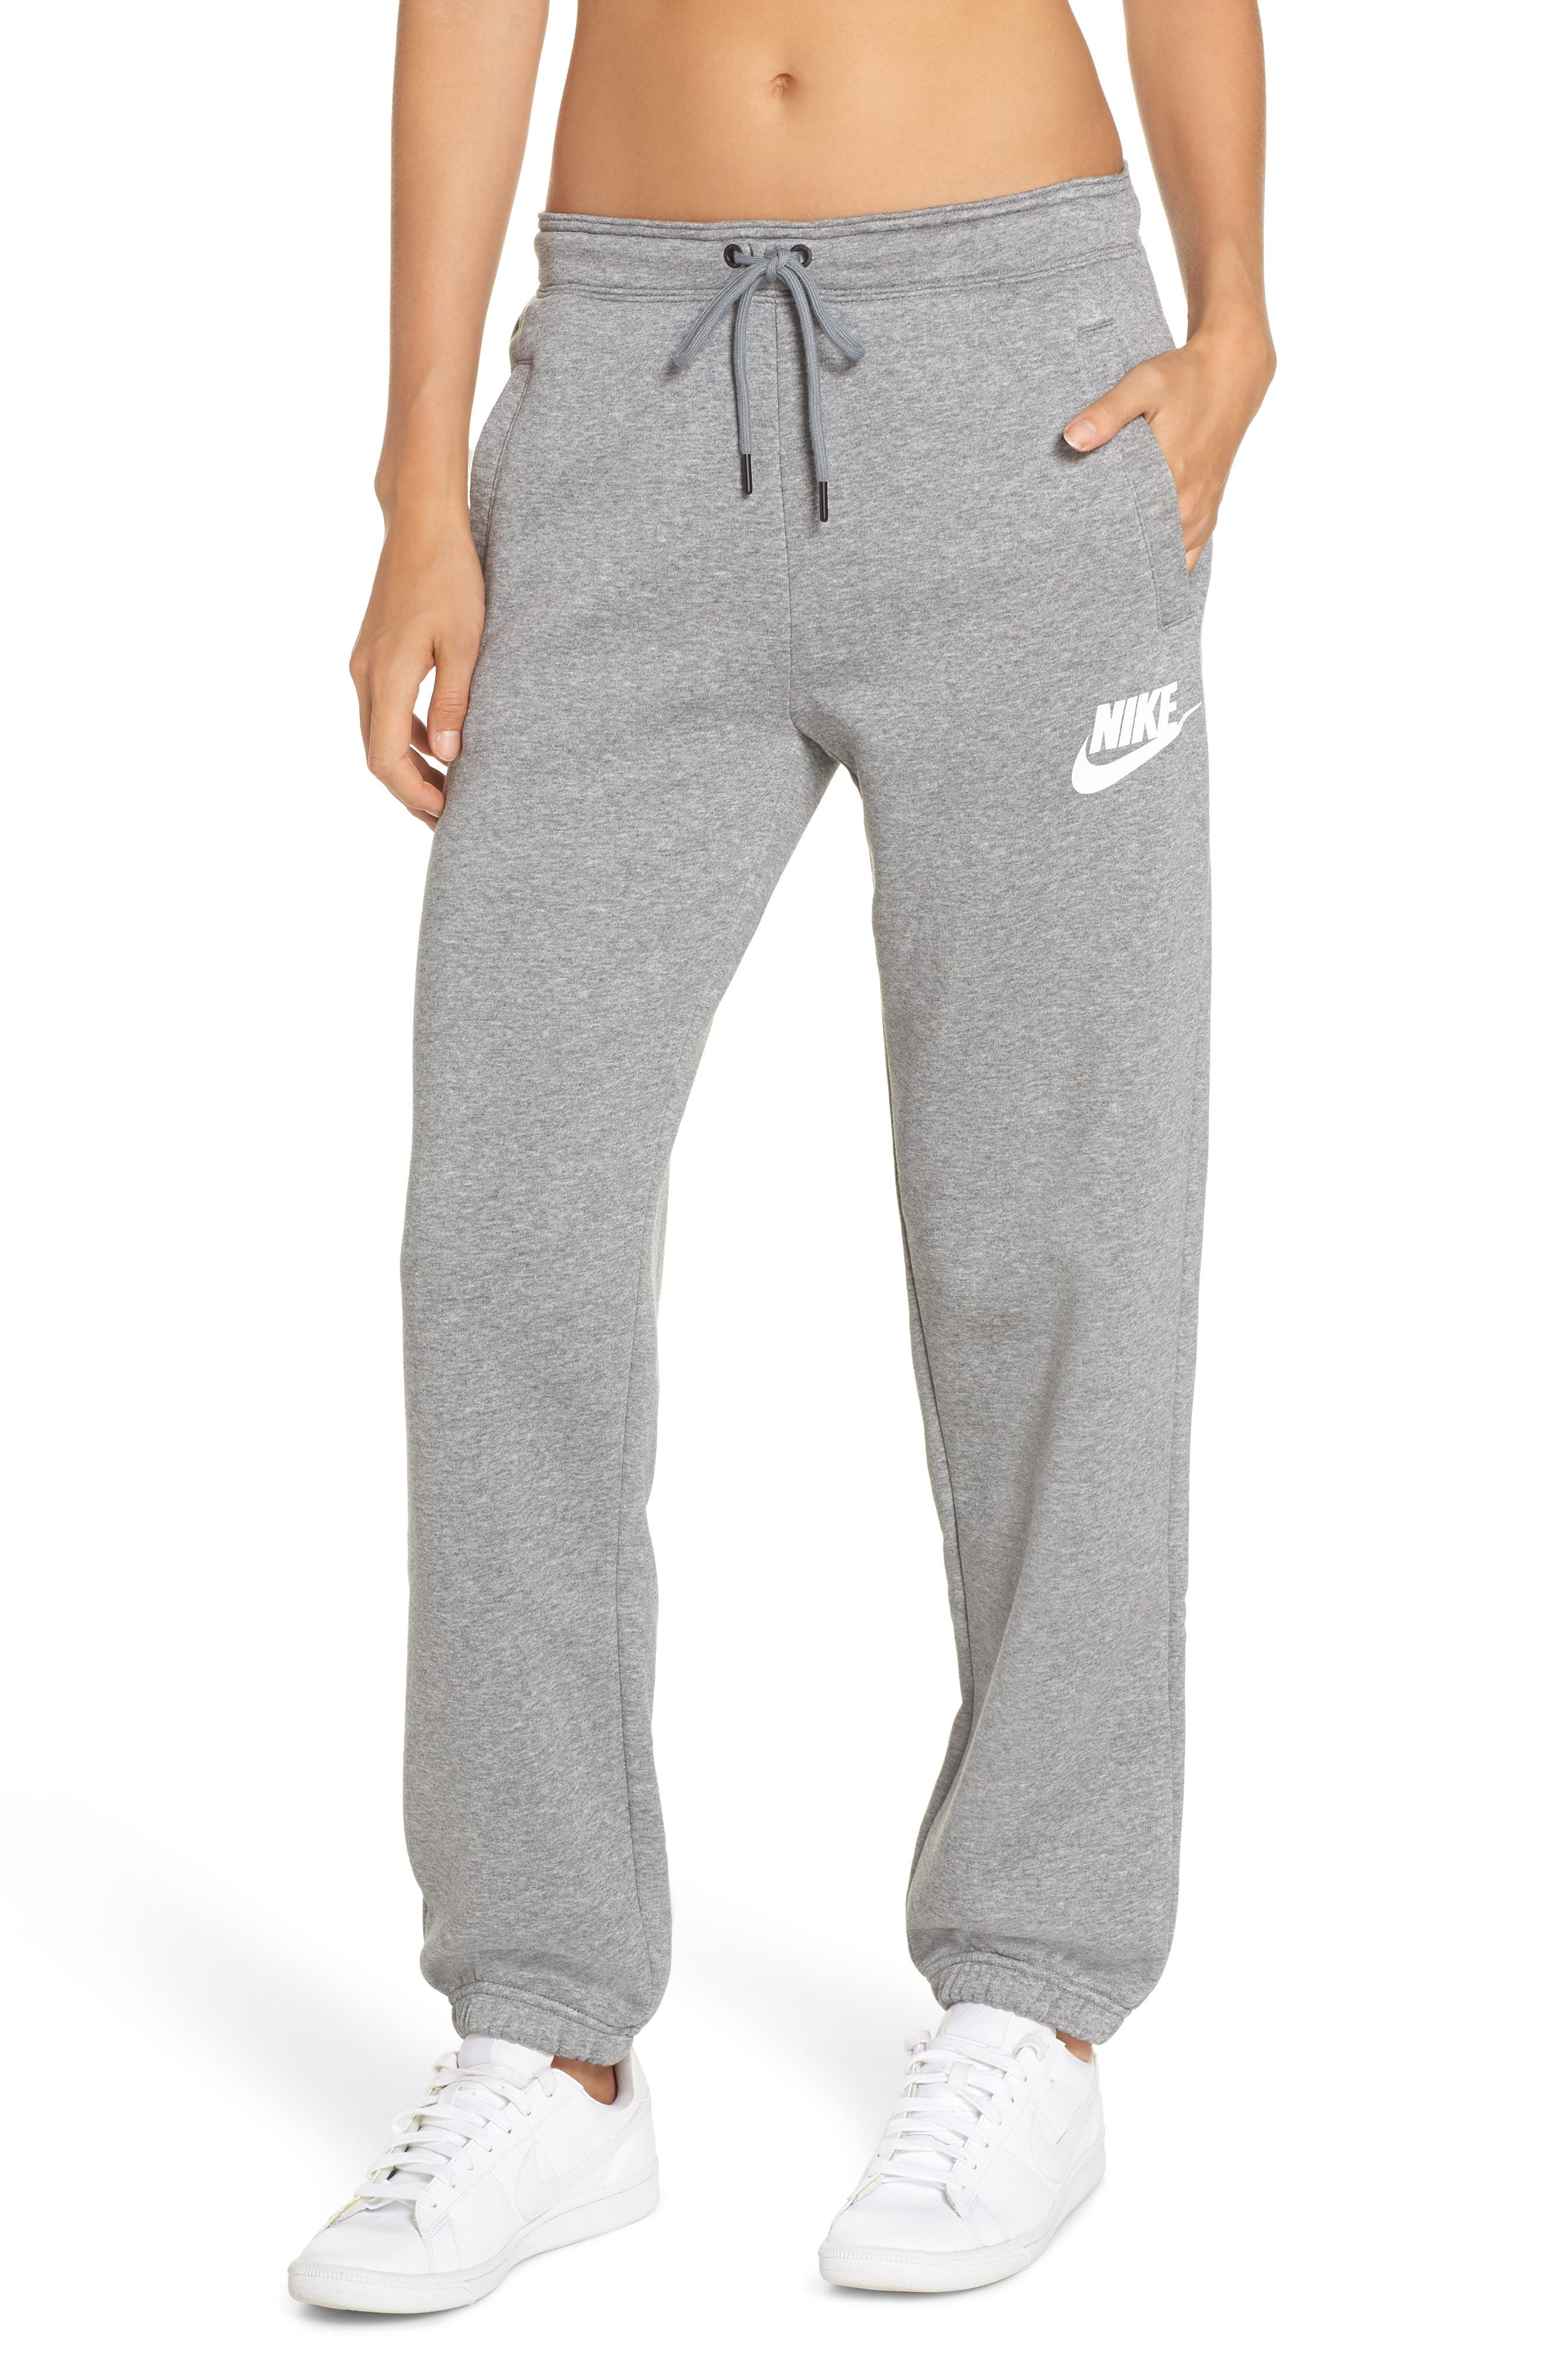 NSW Rally Pants,                         Main,                         color, CARBON HEATHER/ COOL GREY